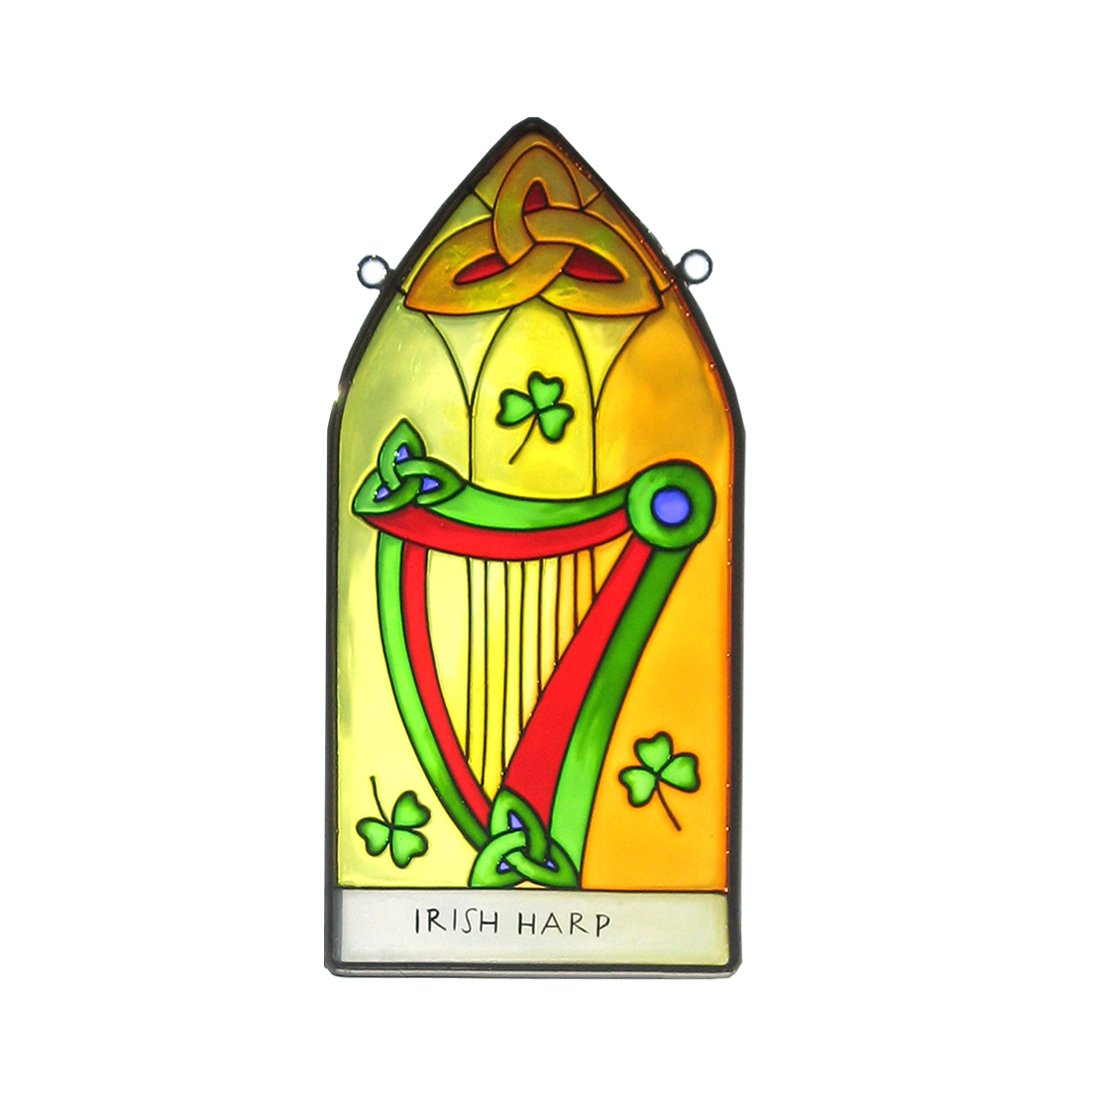 Irish Harp Suncatcher - gothic stained glass window hanging. Irish gift shipped from Ireland. Royal Tara